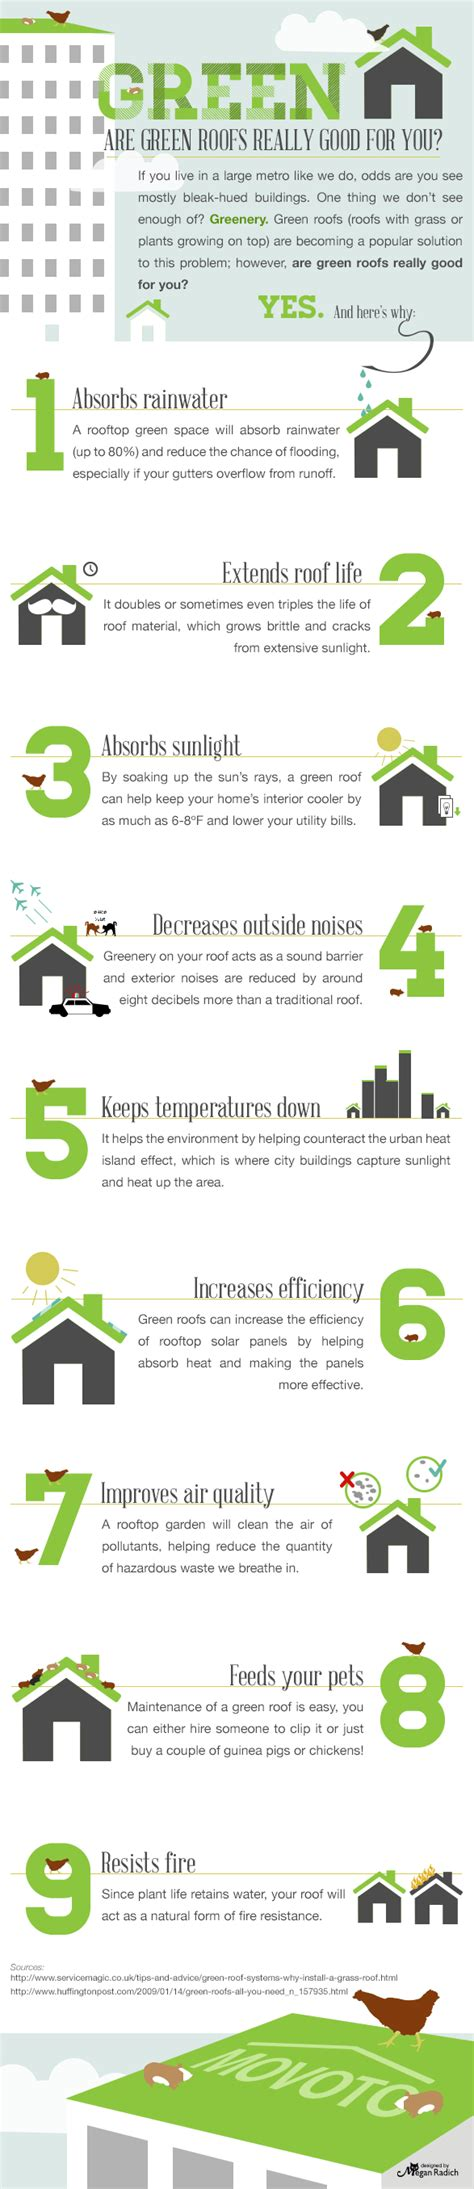 facts about green cool facts about green roofs the green divas